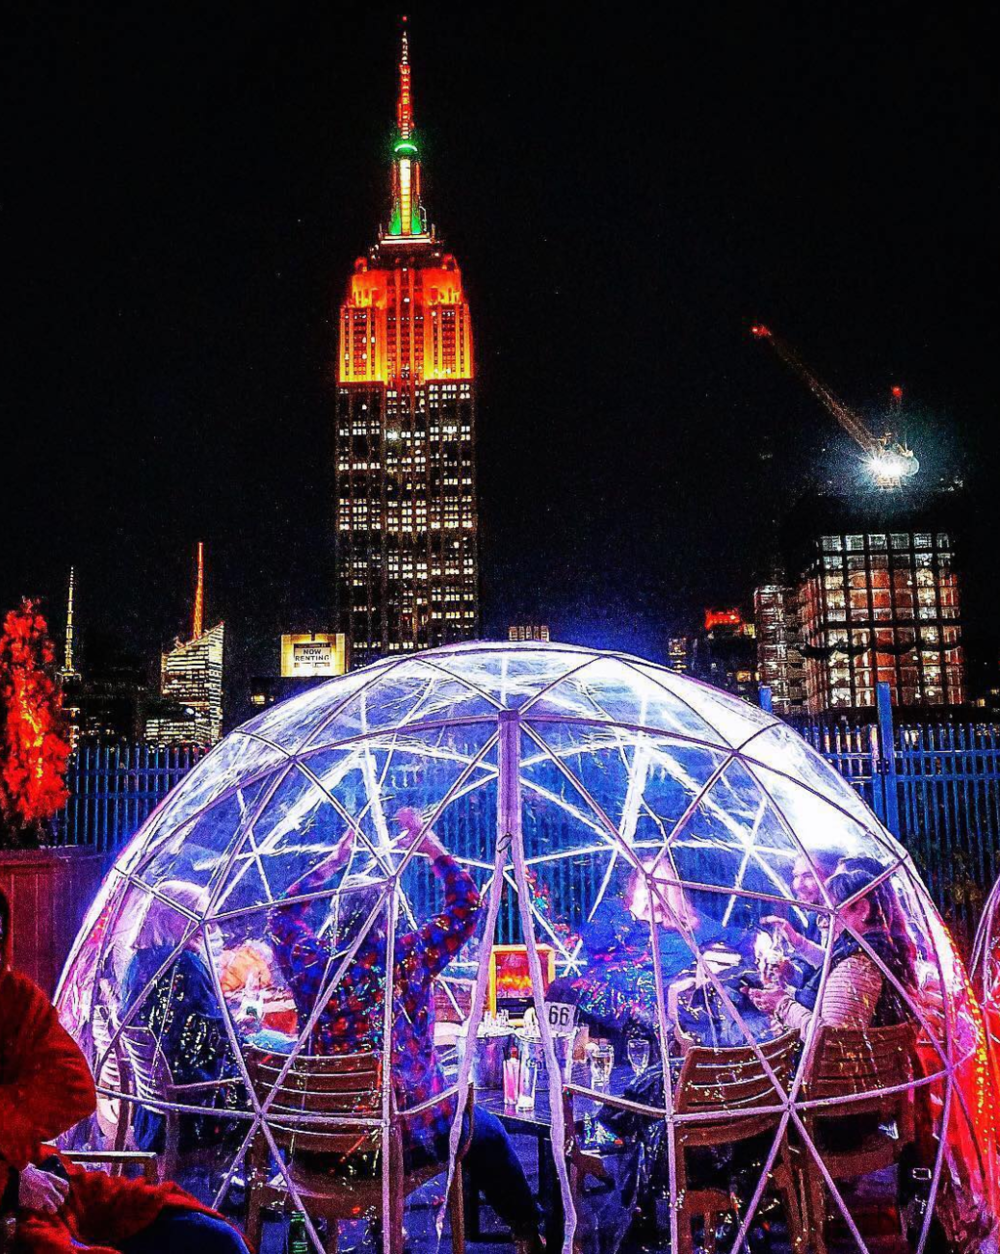 8. EXPERIENCE: The igloos at 230 Fifth